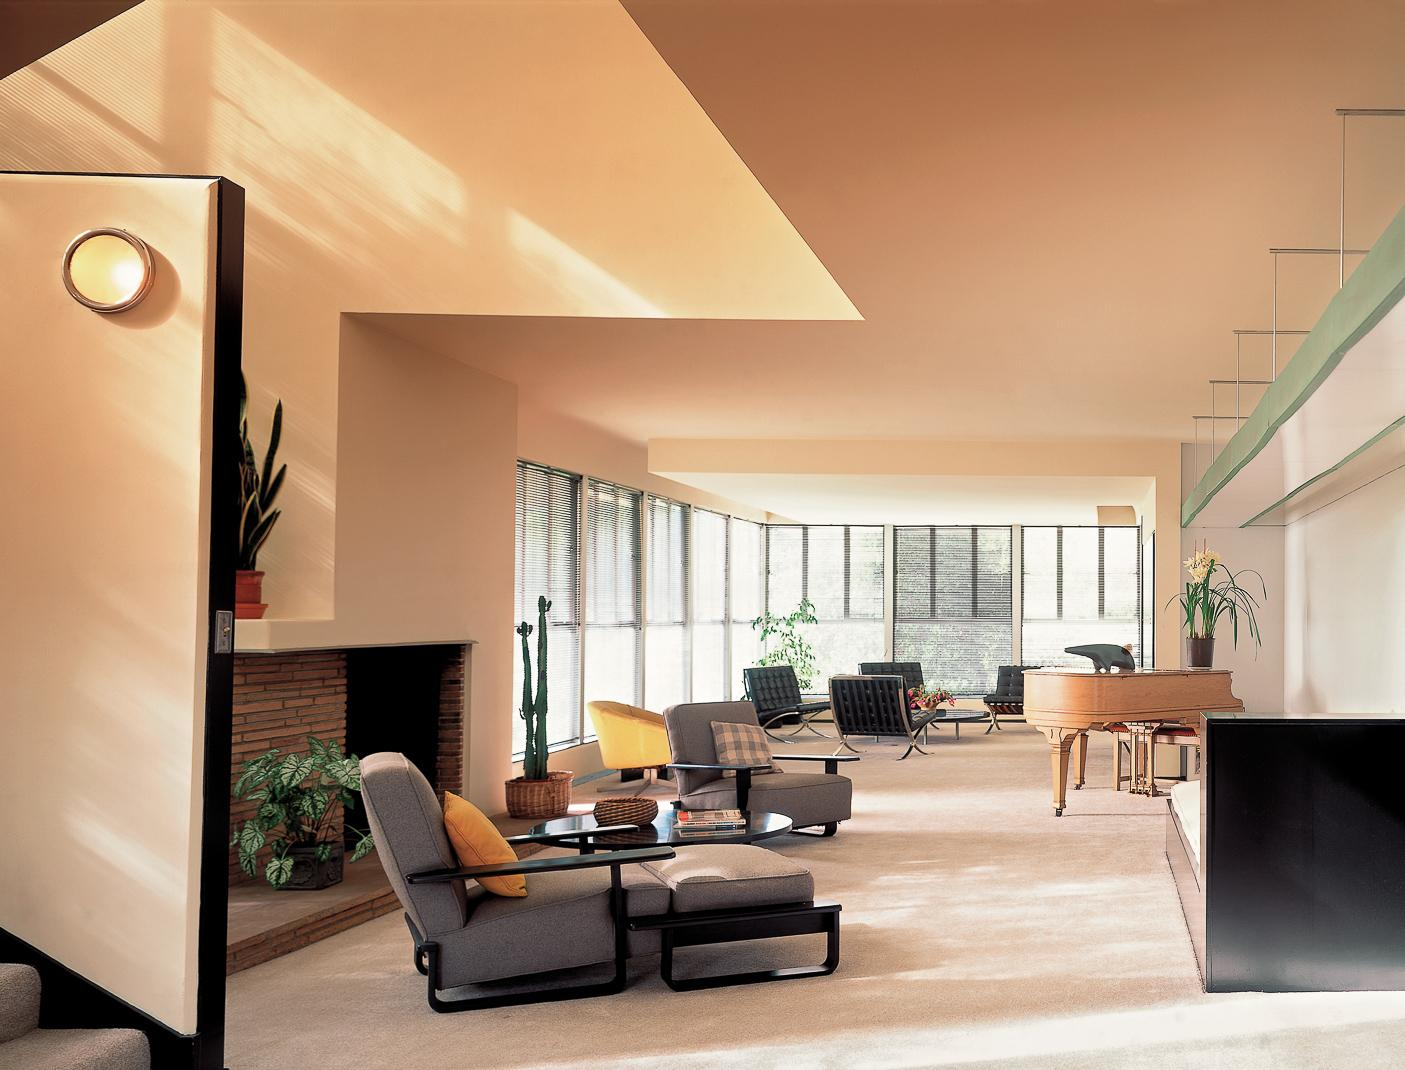 Lovell Health House by Richard Neutra, photograph by Tim Street Porter